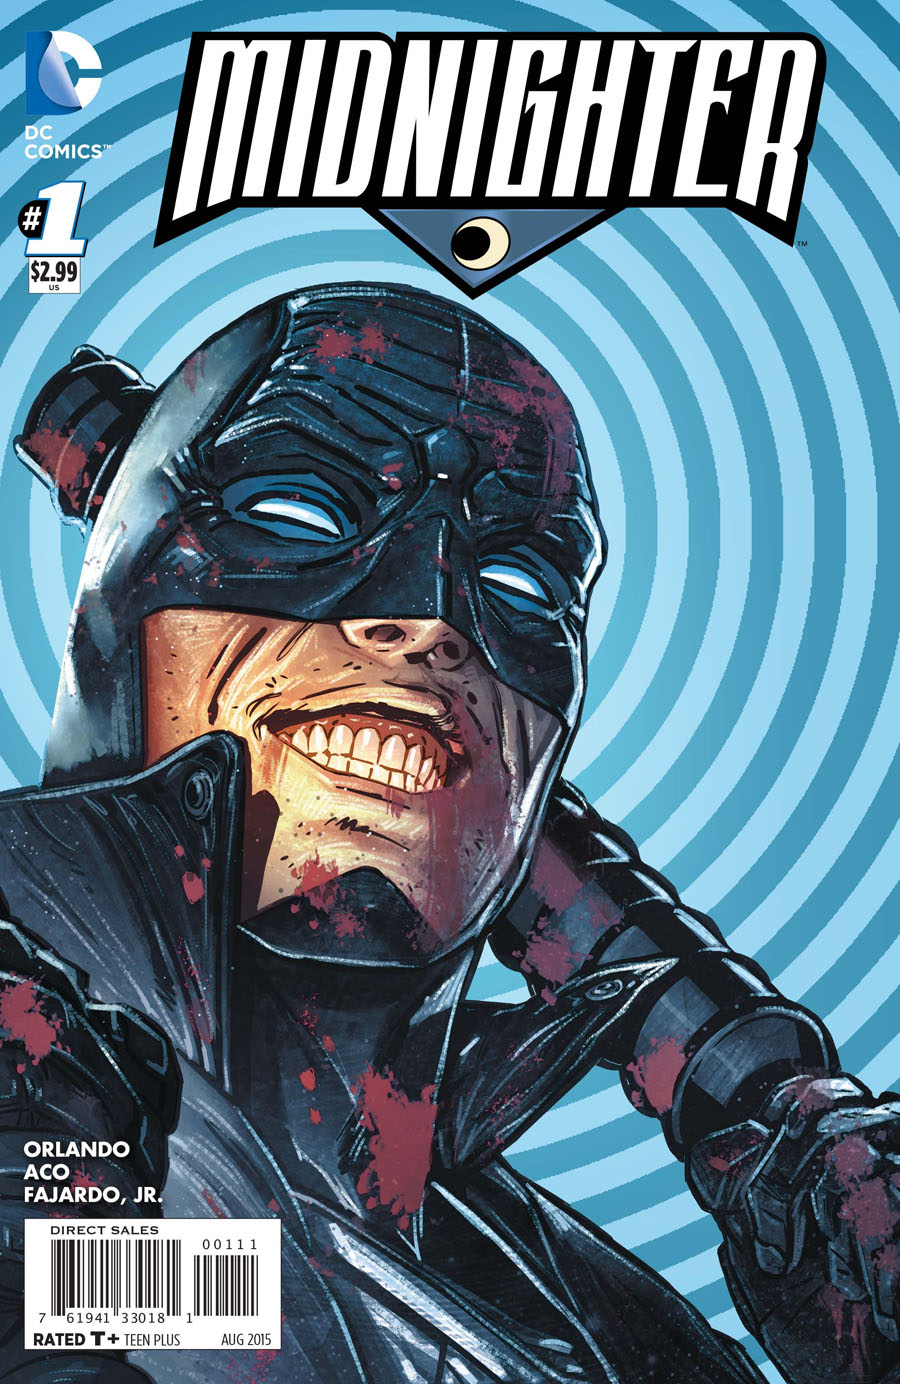 Midnighter Vol 2 #1 Cover A Regular Aco Cover